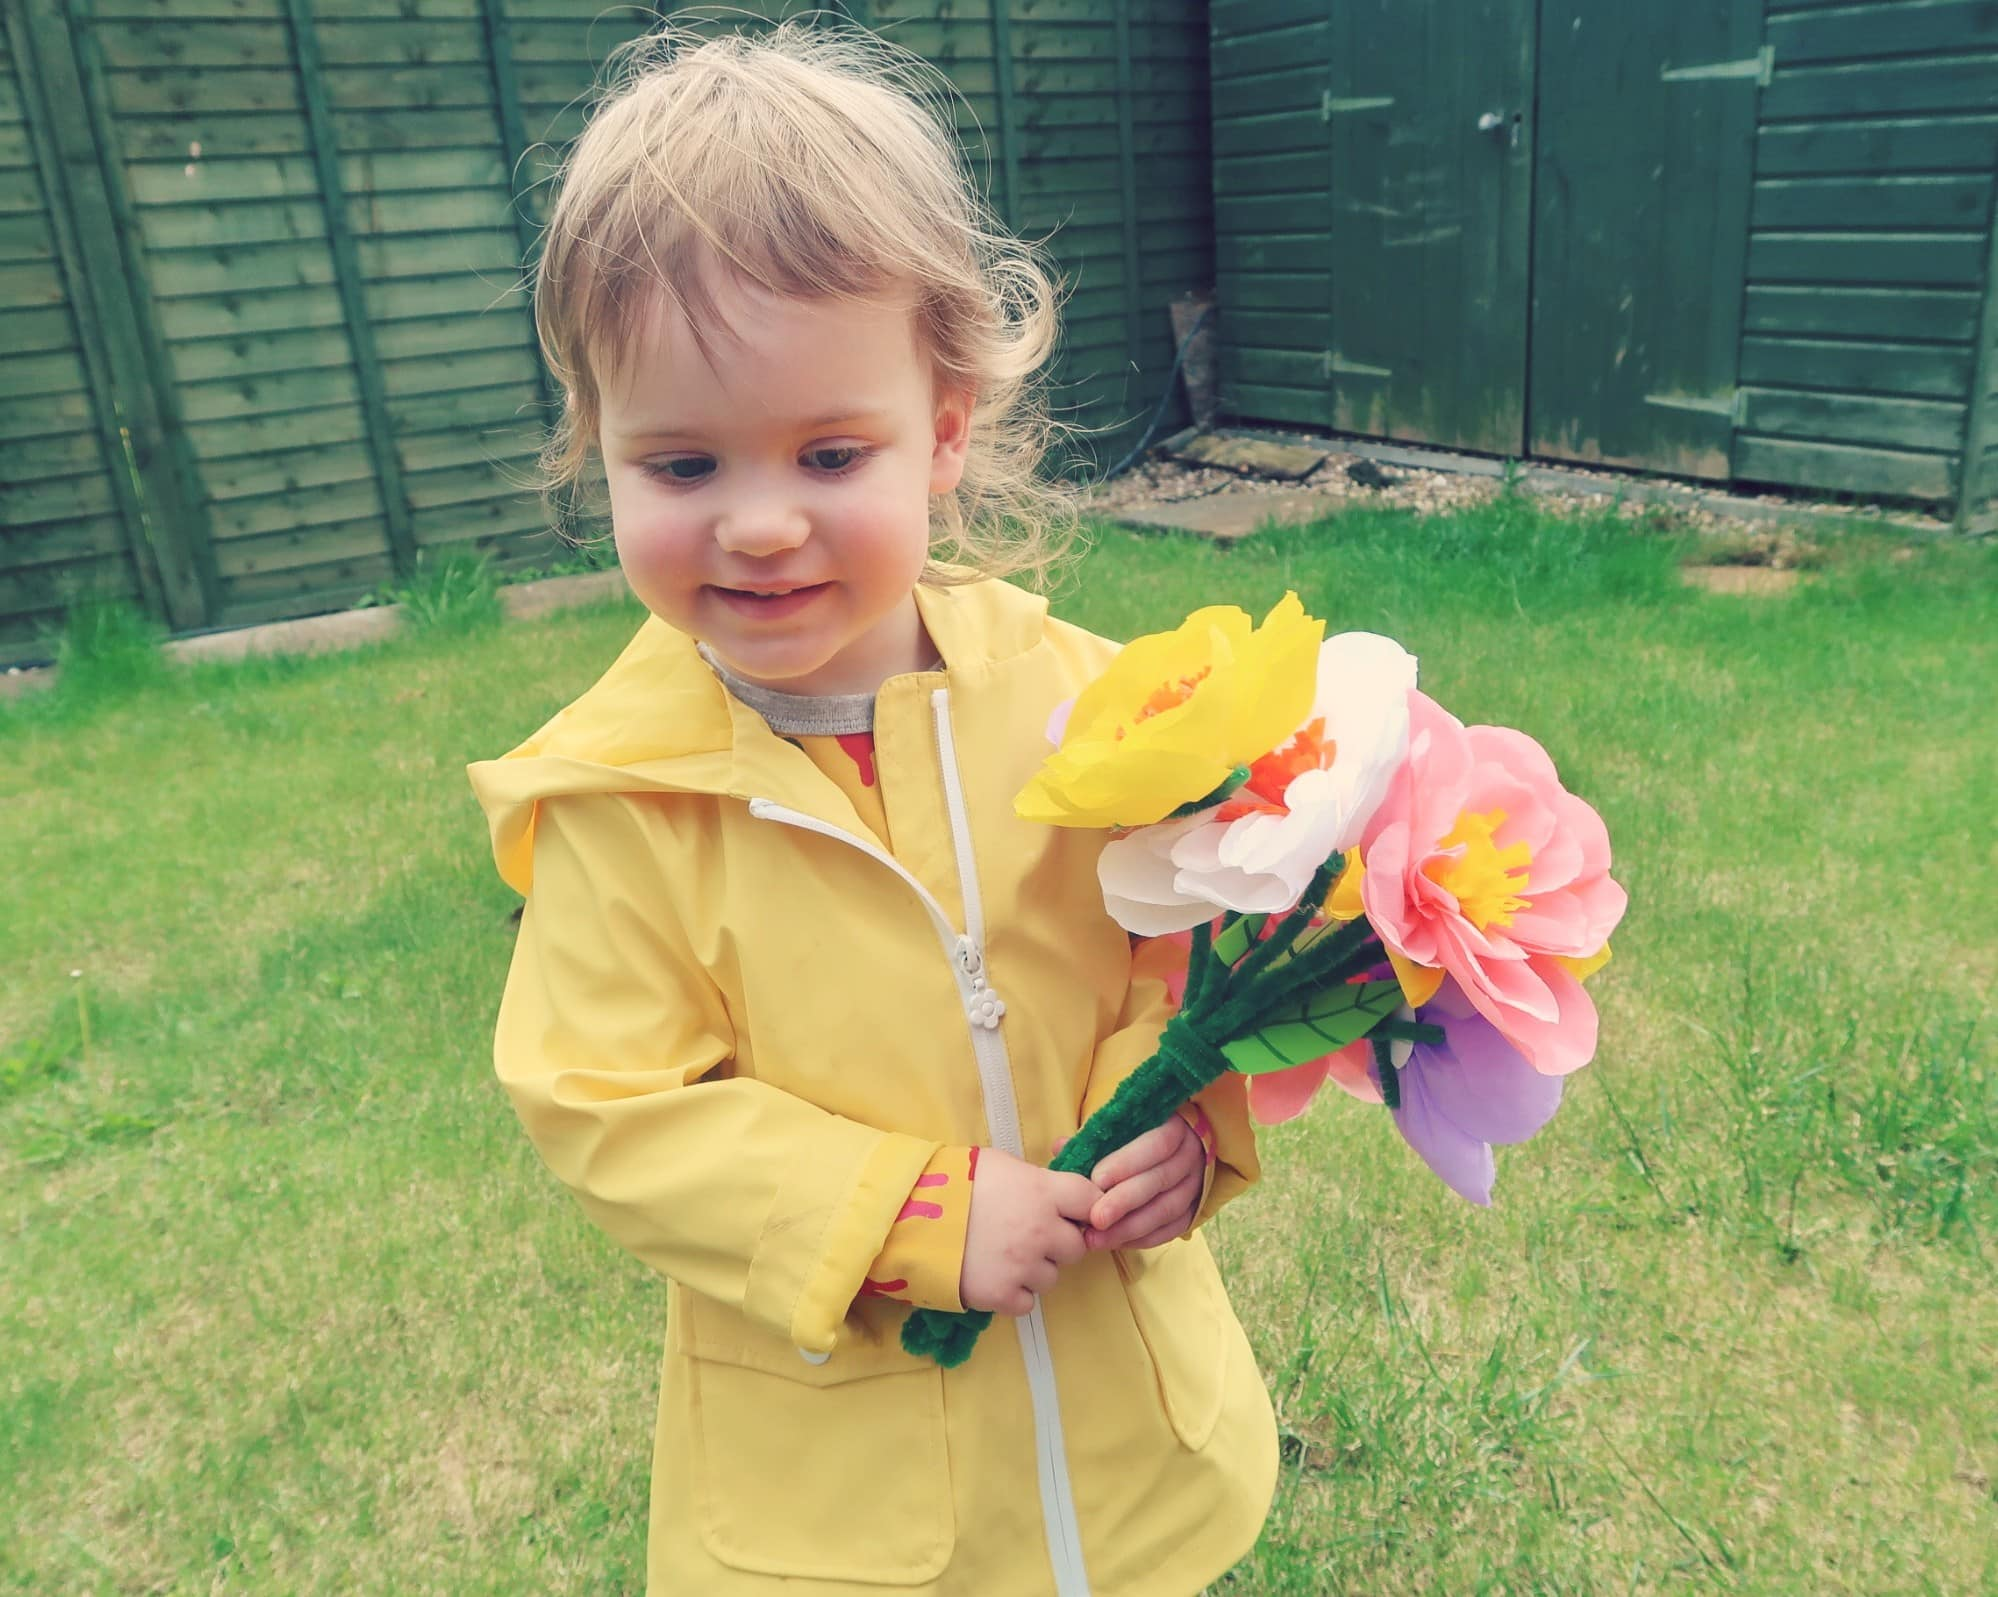 Littlest with her paper flowers